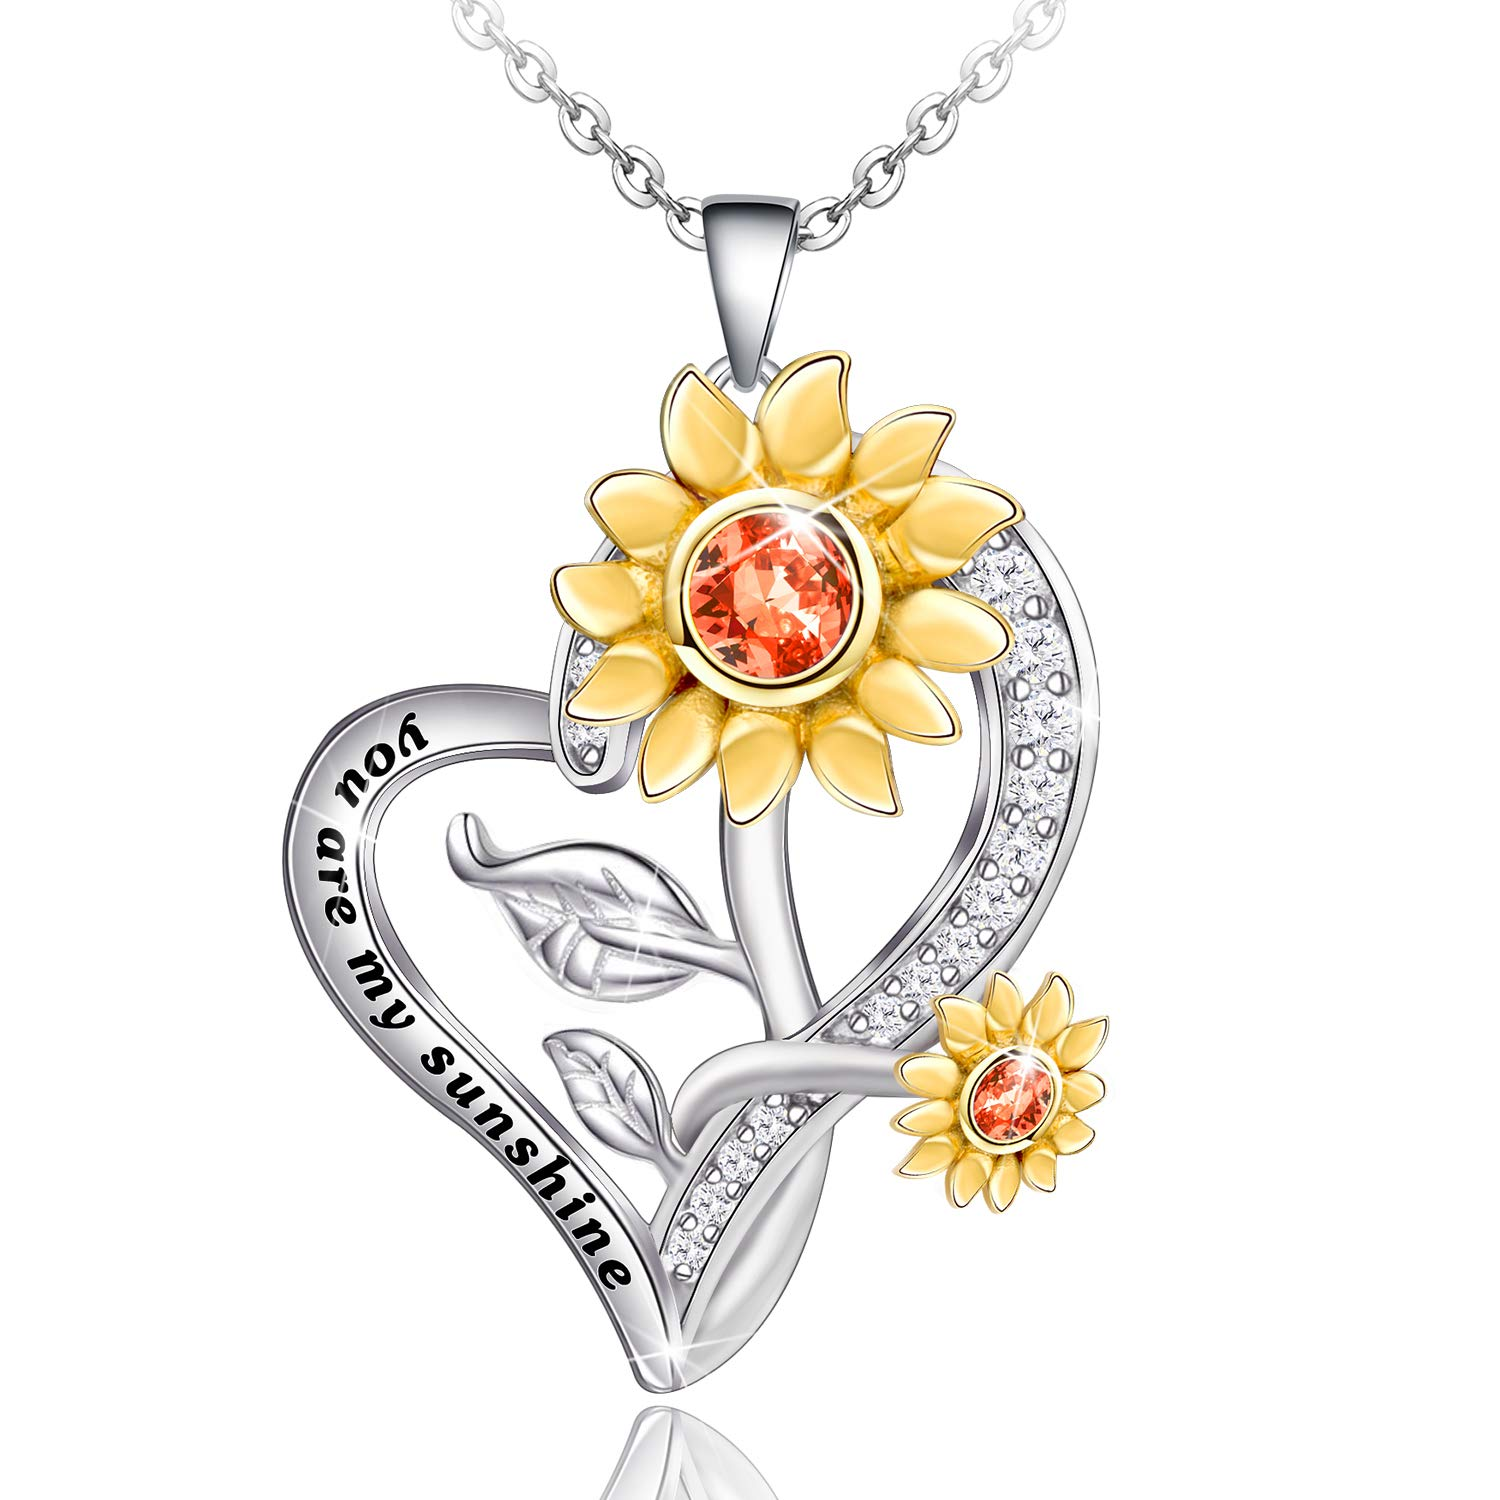 Distance Sunflower Necklace for Women S925 Sterling Silver Heart Necklace Jewelry,You are My Sunshine Pendant Necklaces Valentines Jewelry Gifts for Women Girls Mom Wife